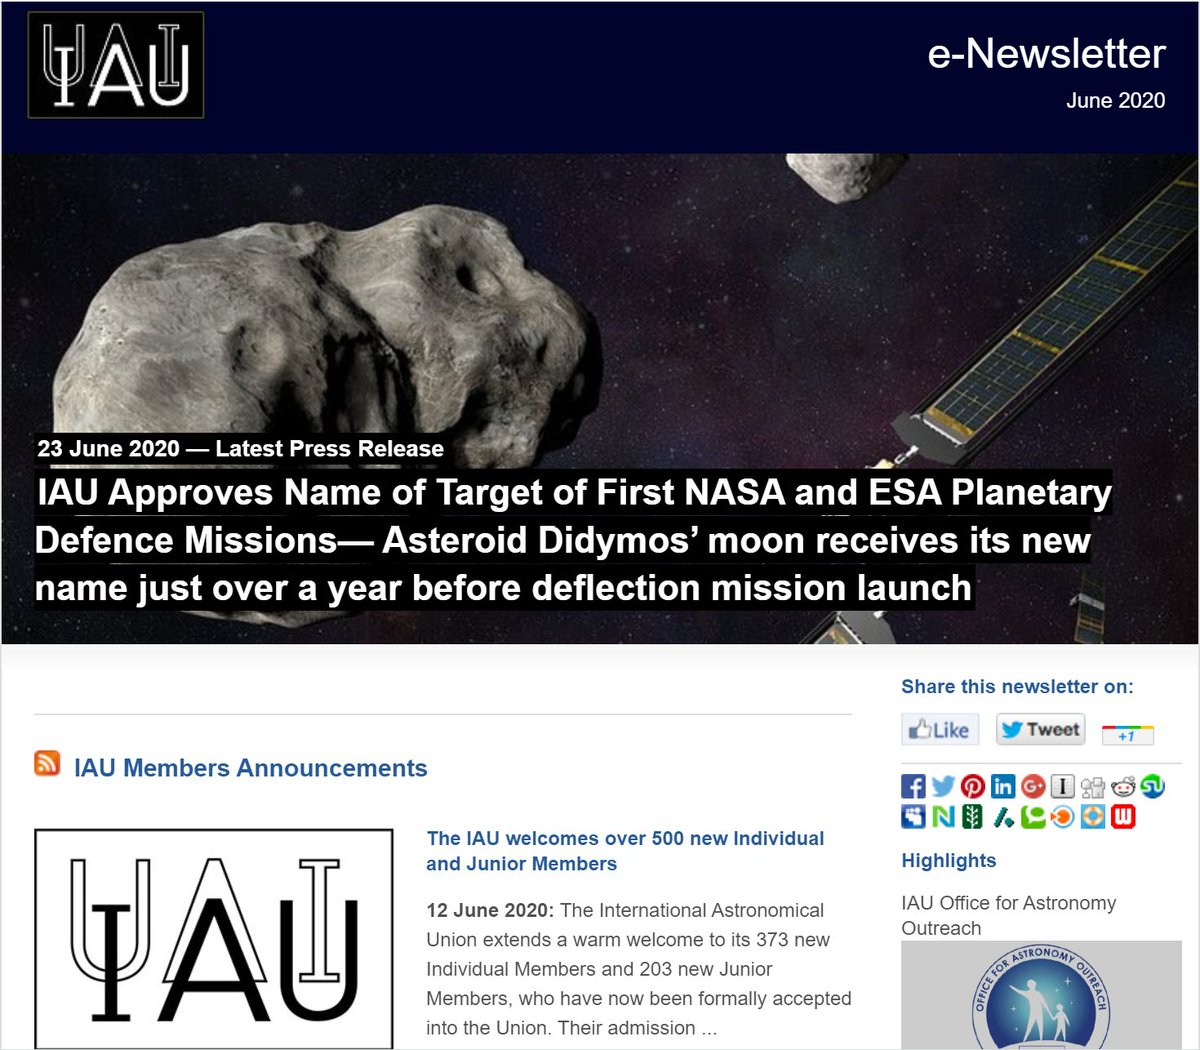 #IAUpublications The latest IAU e-Newsletter is now available. Read it here: ow.ly/dzFy50AfRhO Sign up for the IAU e-Newsletter here: ow.ly/UBEl50AfRhP